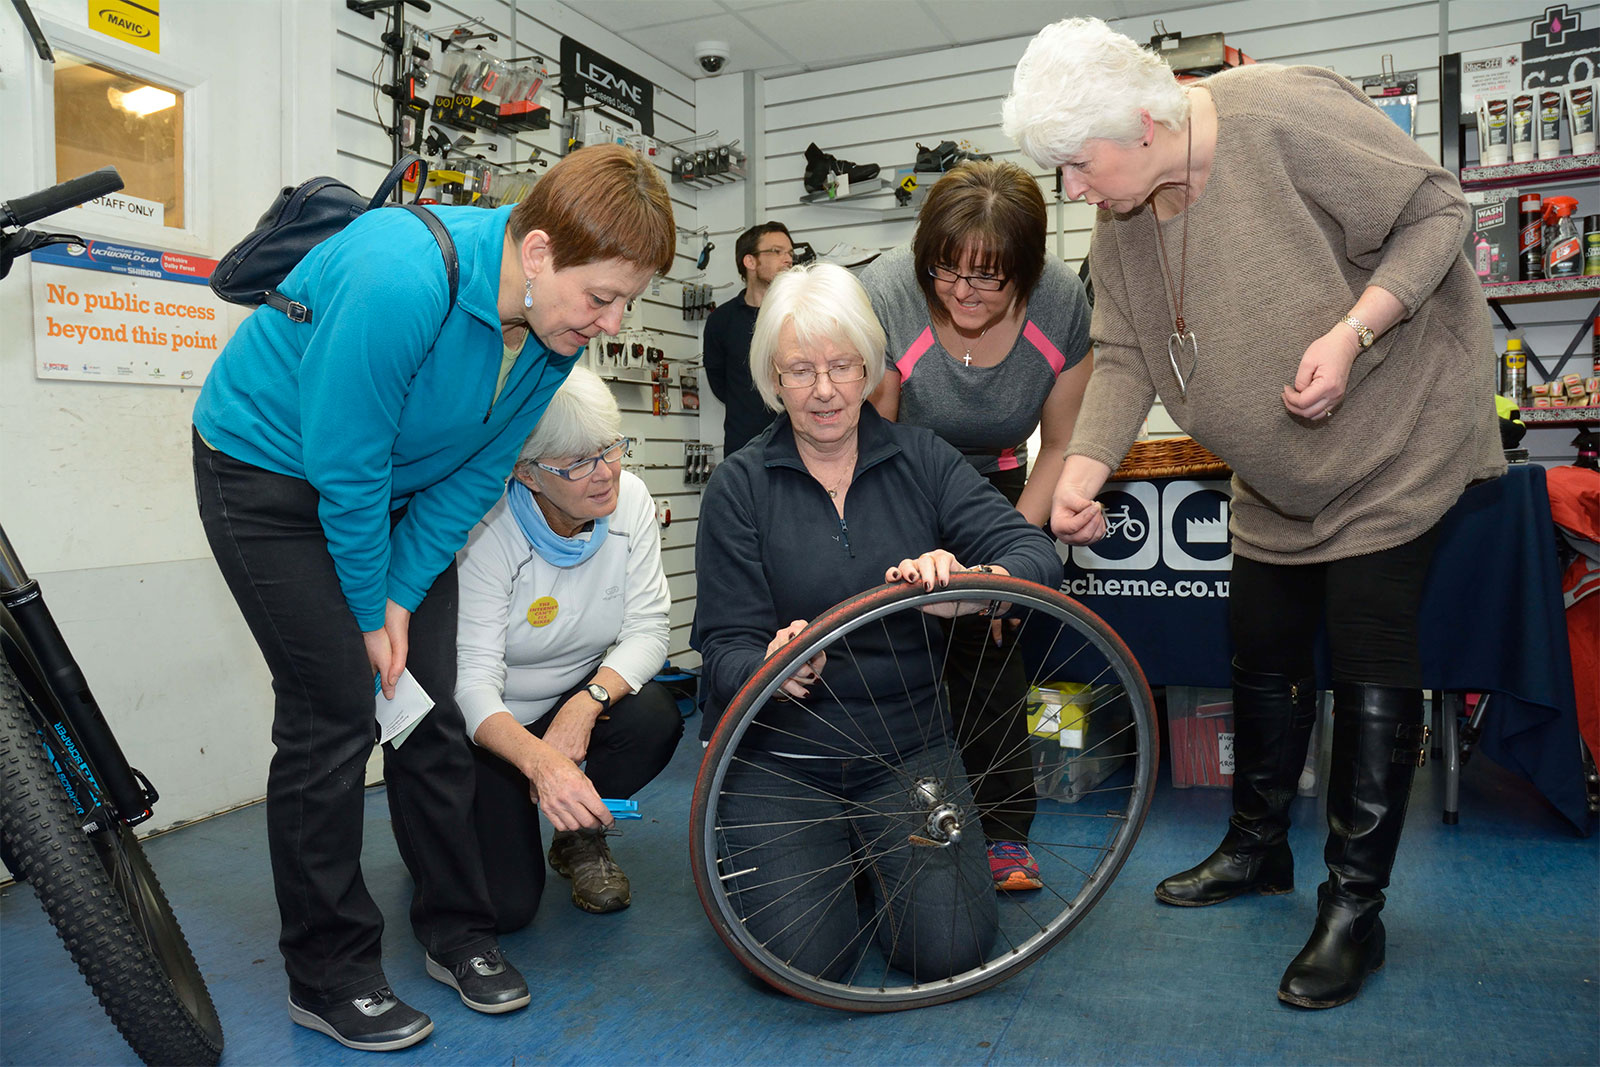 Women s cycling campaign - Puncture party workshop Ken Foster s Chorlton 2017